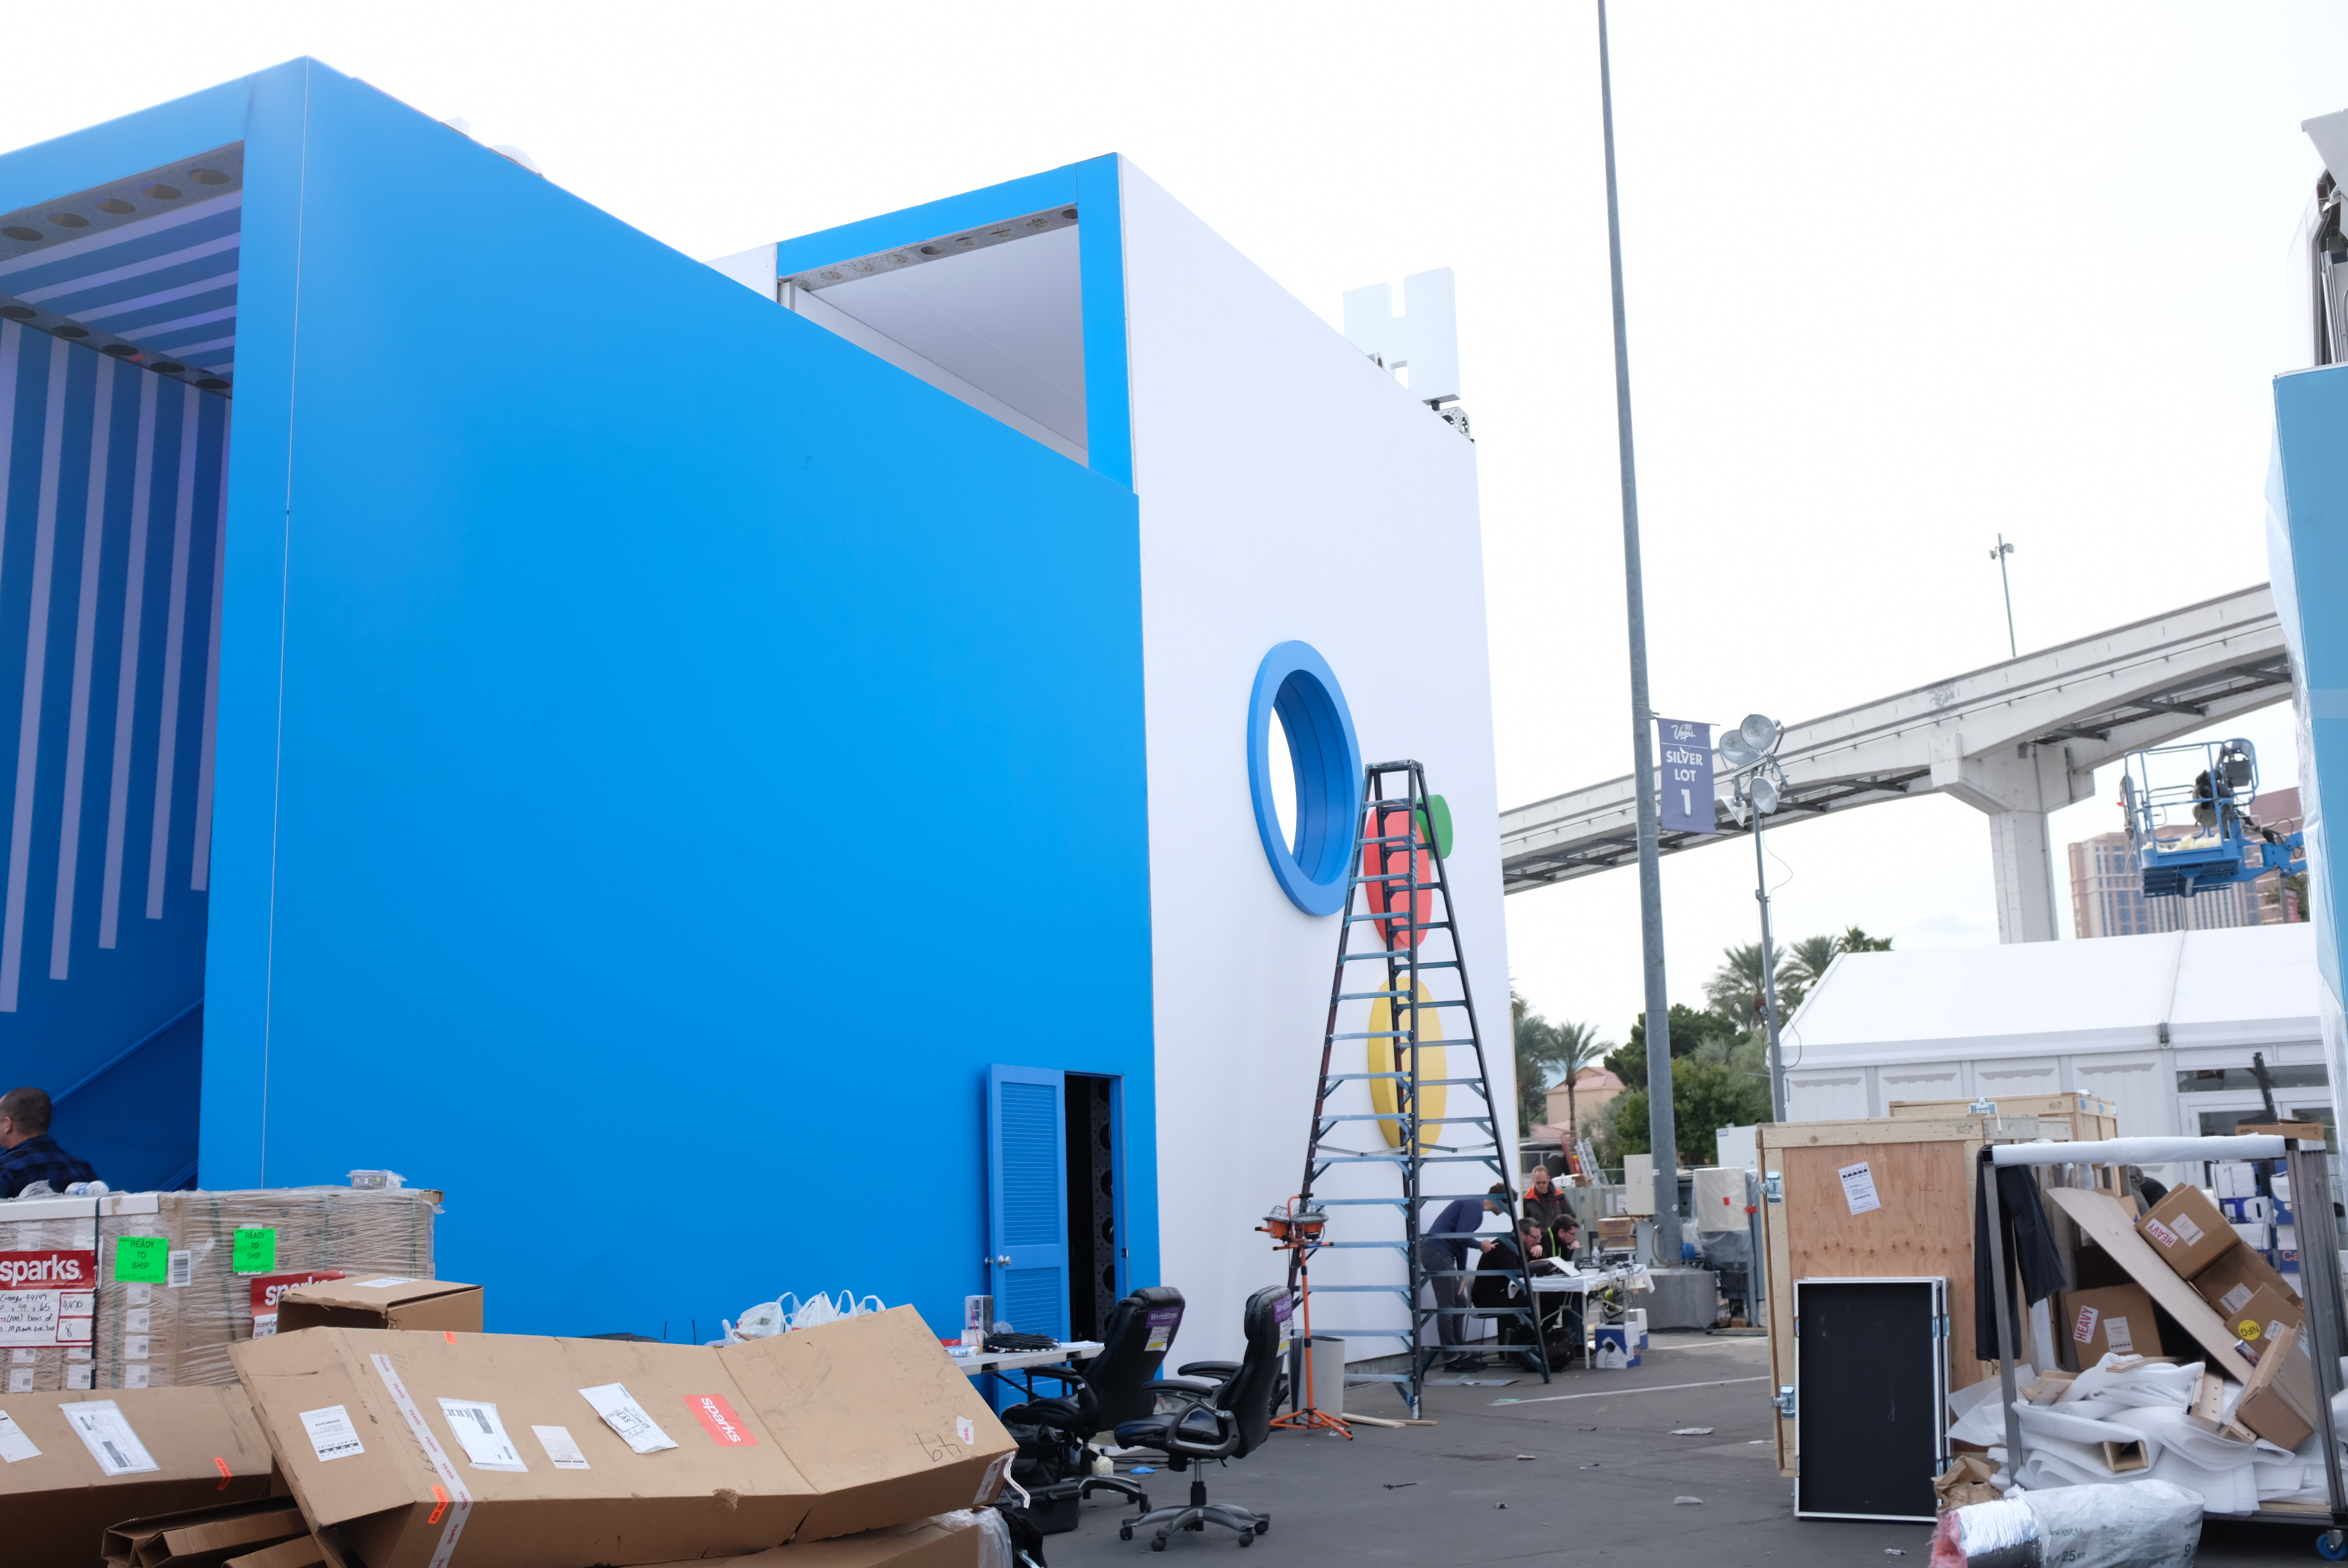 Google has planted its flag at CES